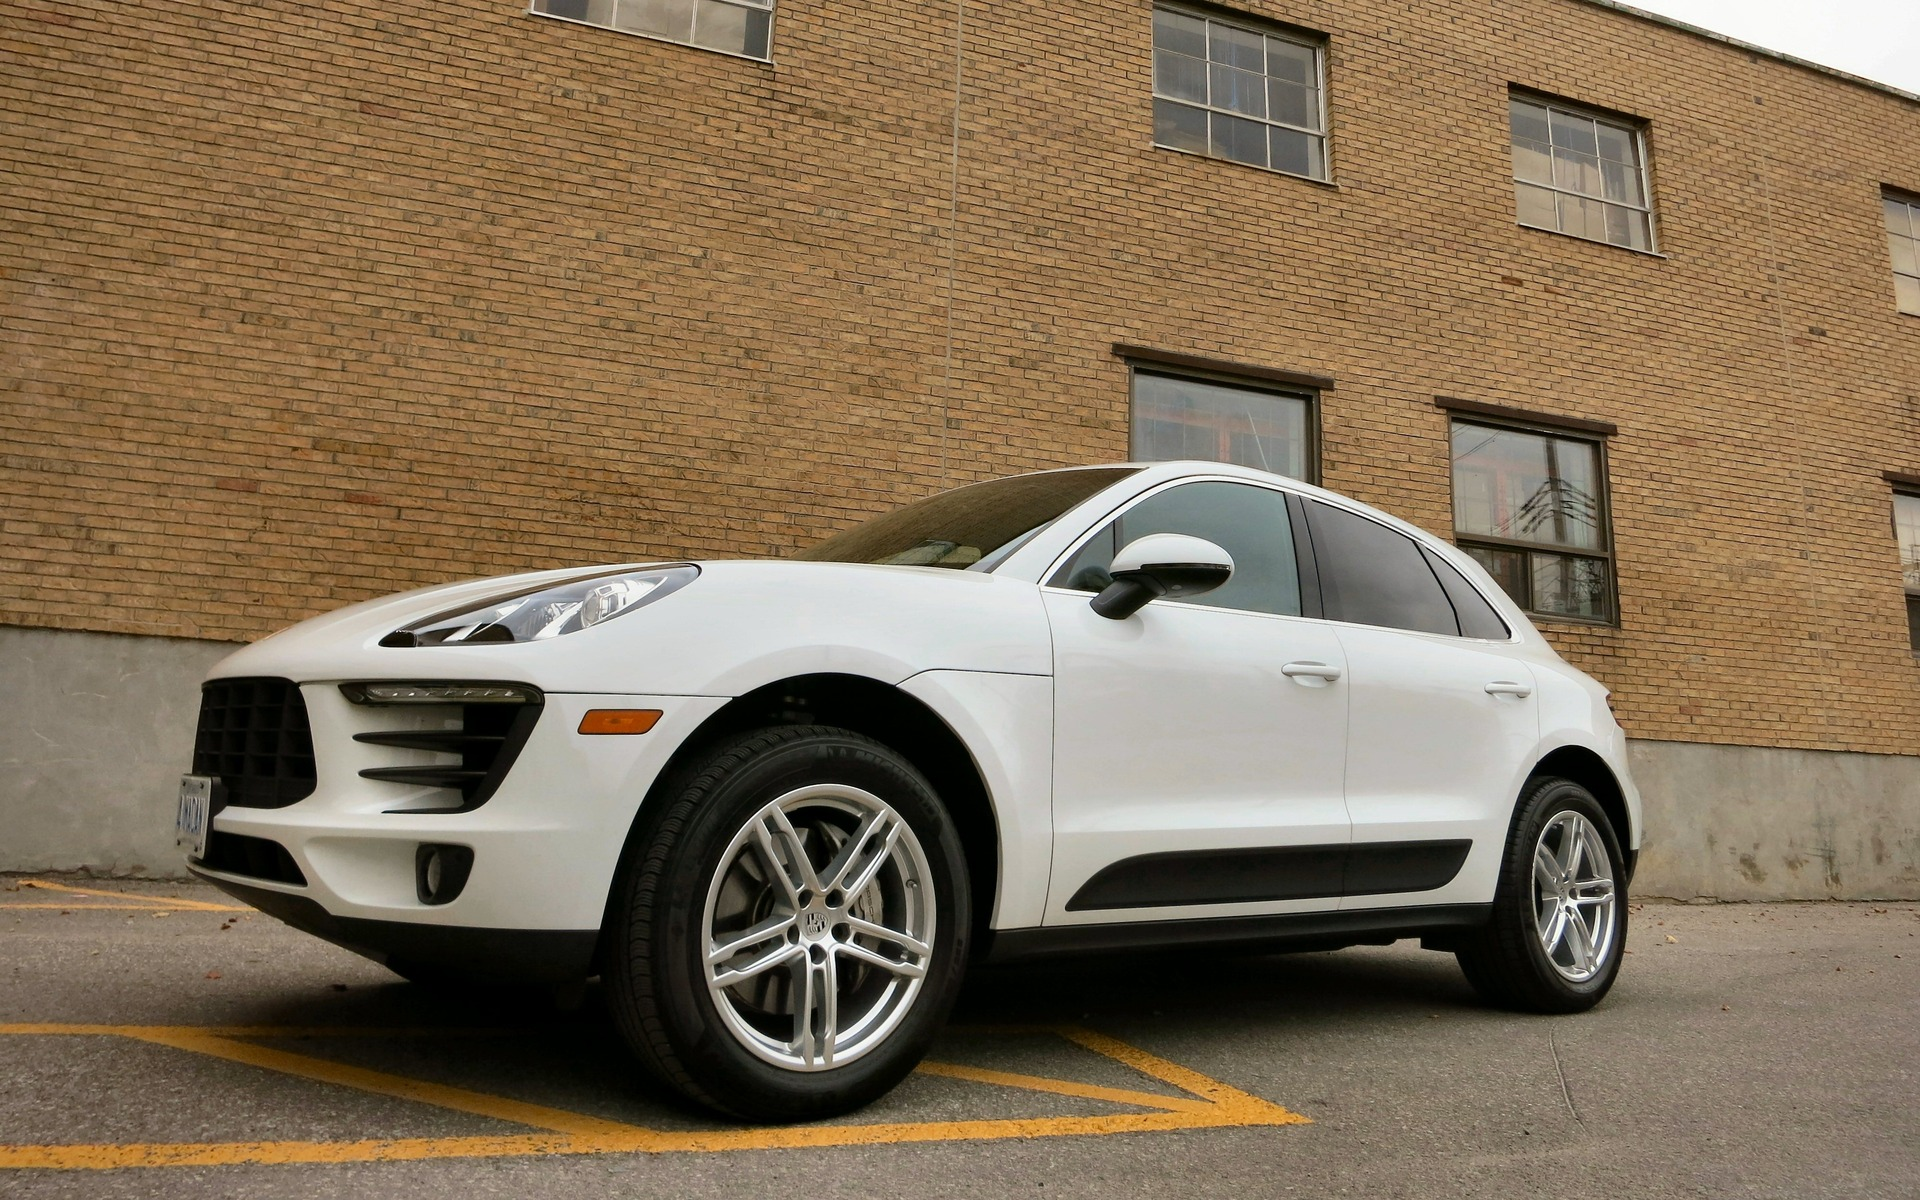 2015 Porsche Macan S The Suv For Drivers Who Hate Suvs 1 20